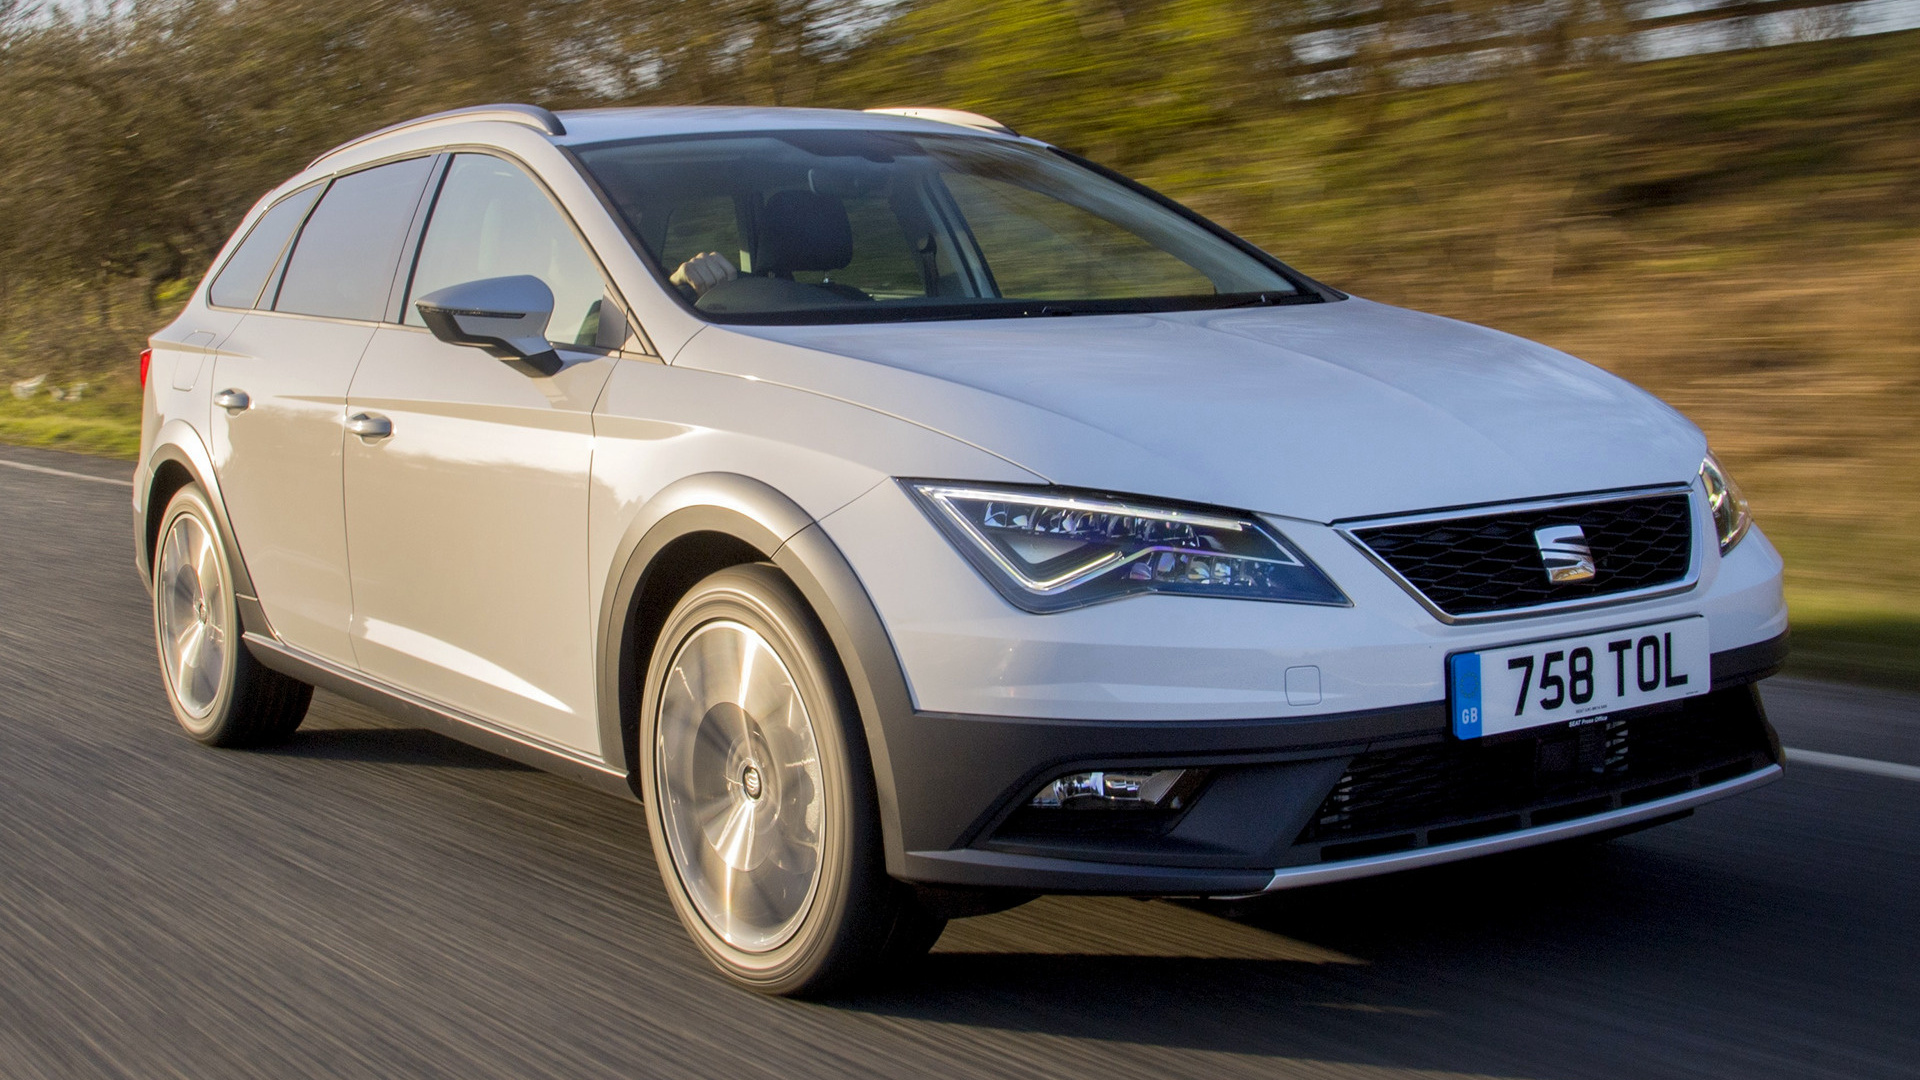 2017 seat leon x perience uk wallpapers and hd images. Black Bedroom Furniture Sets. Home Design Ideas